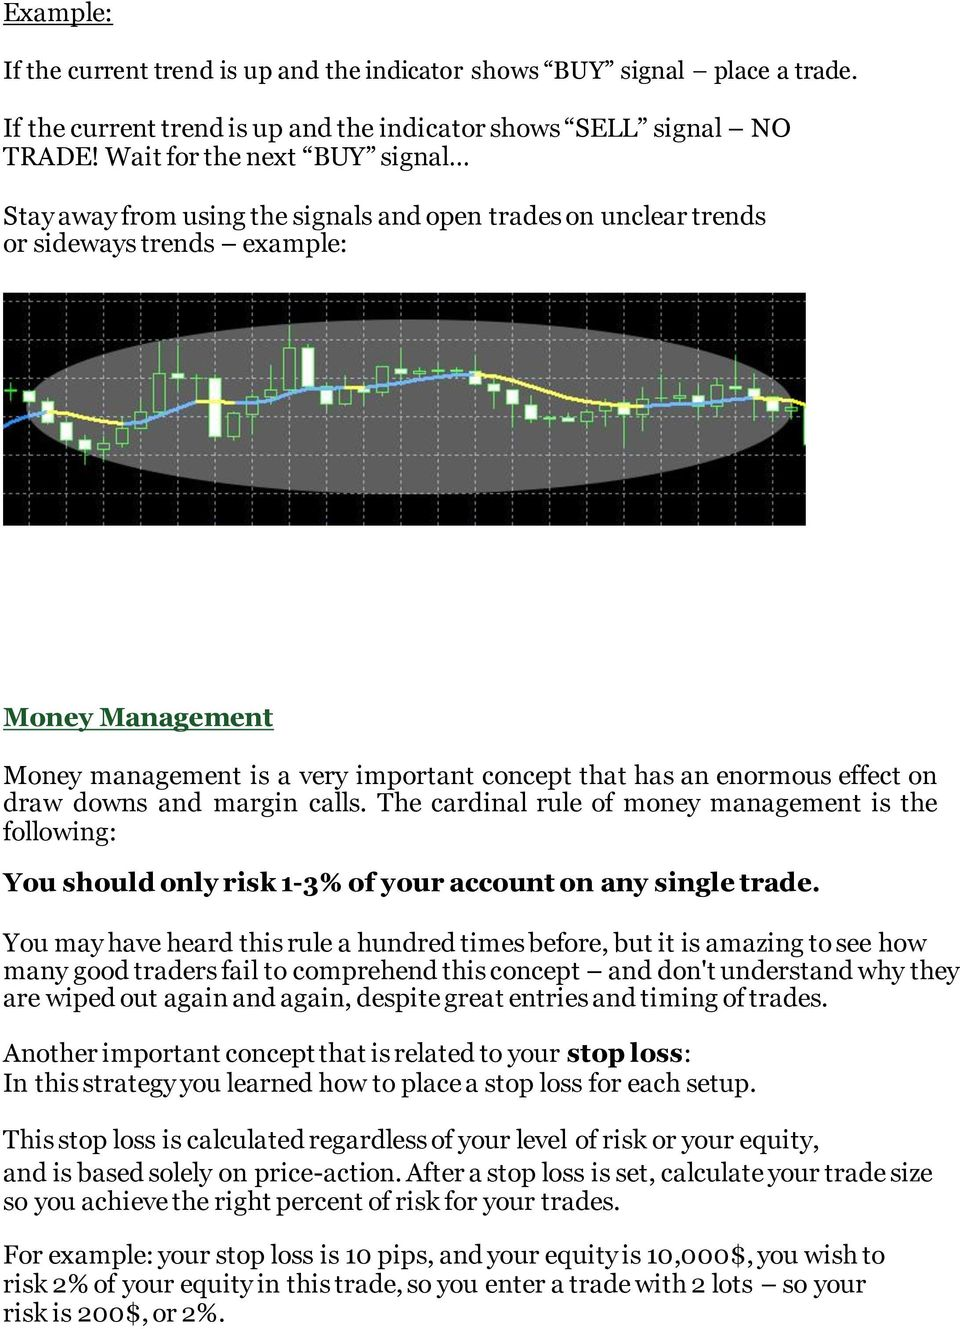 enormous effect on draw downs and margin calls. The cardinal rule of money management is the following: You should only risk 1-3% of your account on any single trade.